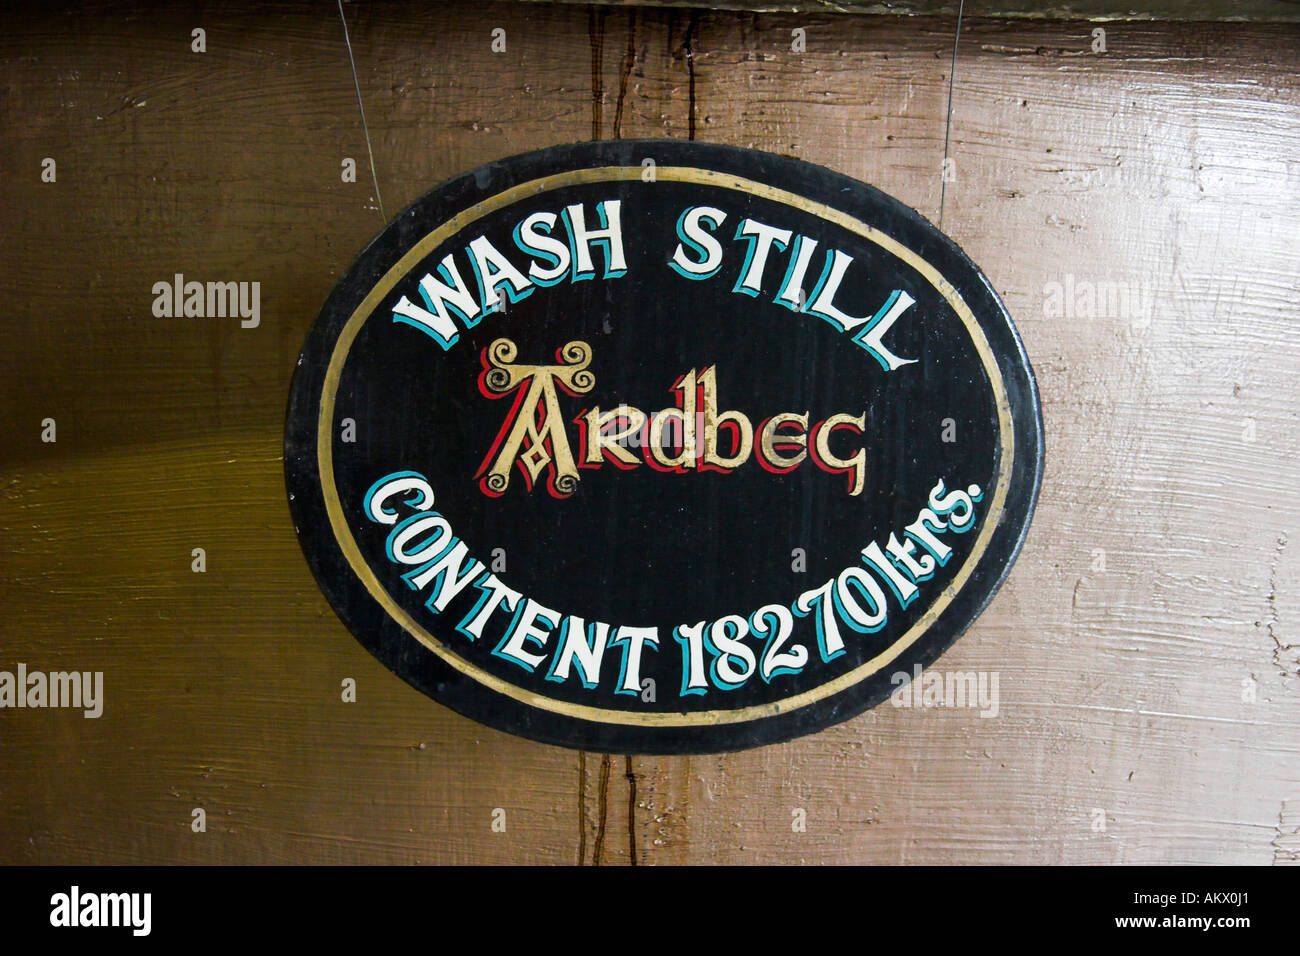 Sign at a wash still, showing his capacity, Ardbeg distillery, Isle of Islay, Scotland. - Stock Image